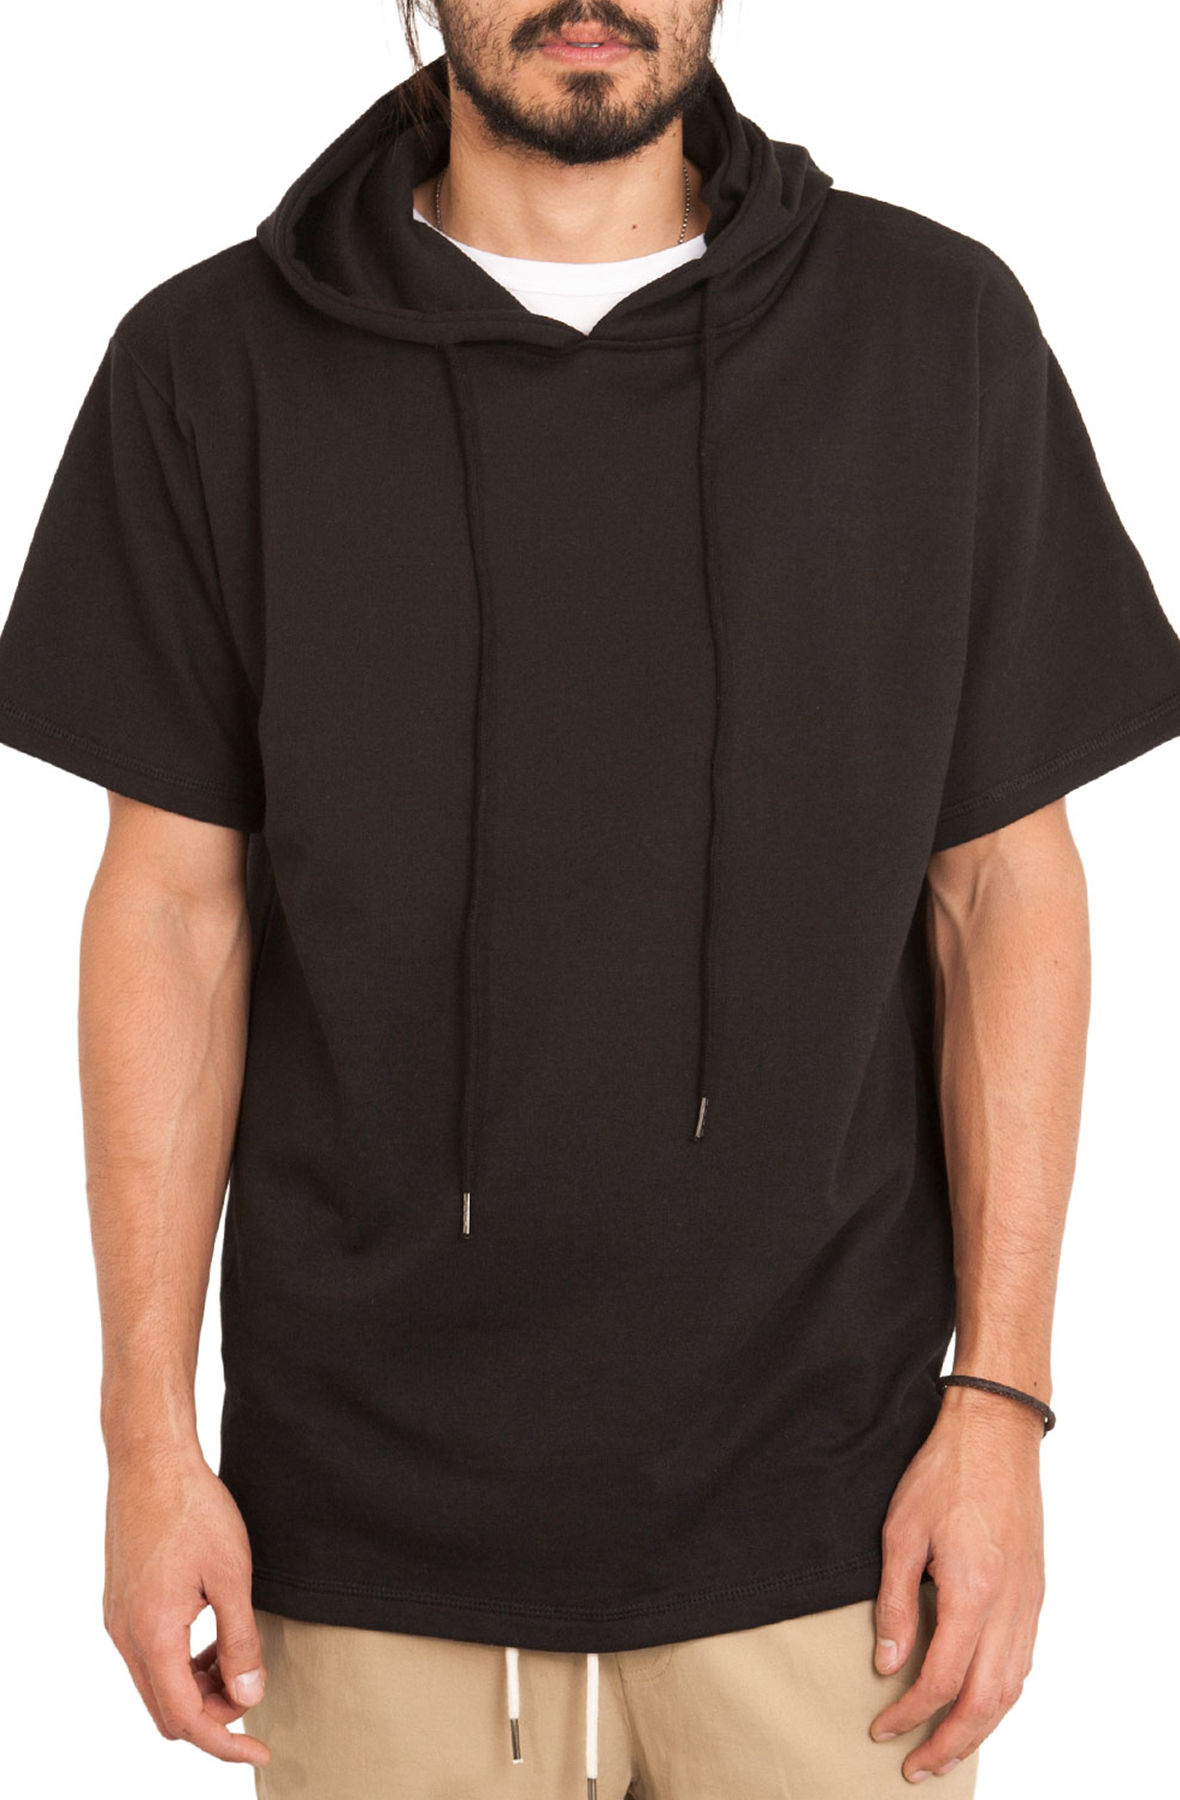 Image of The Short Sleeve Split Hem Hoodie in Black